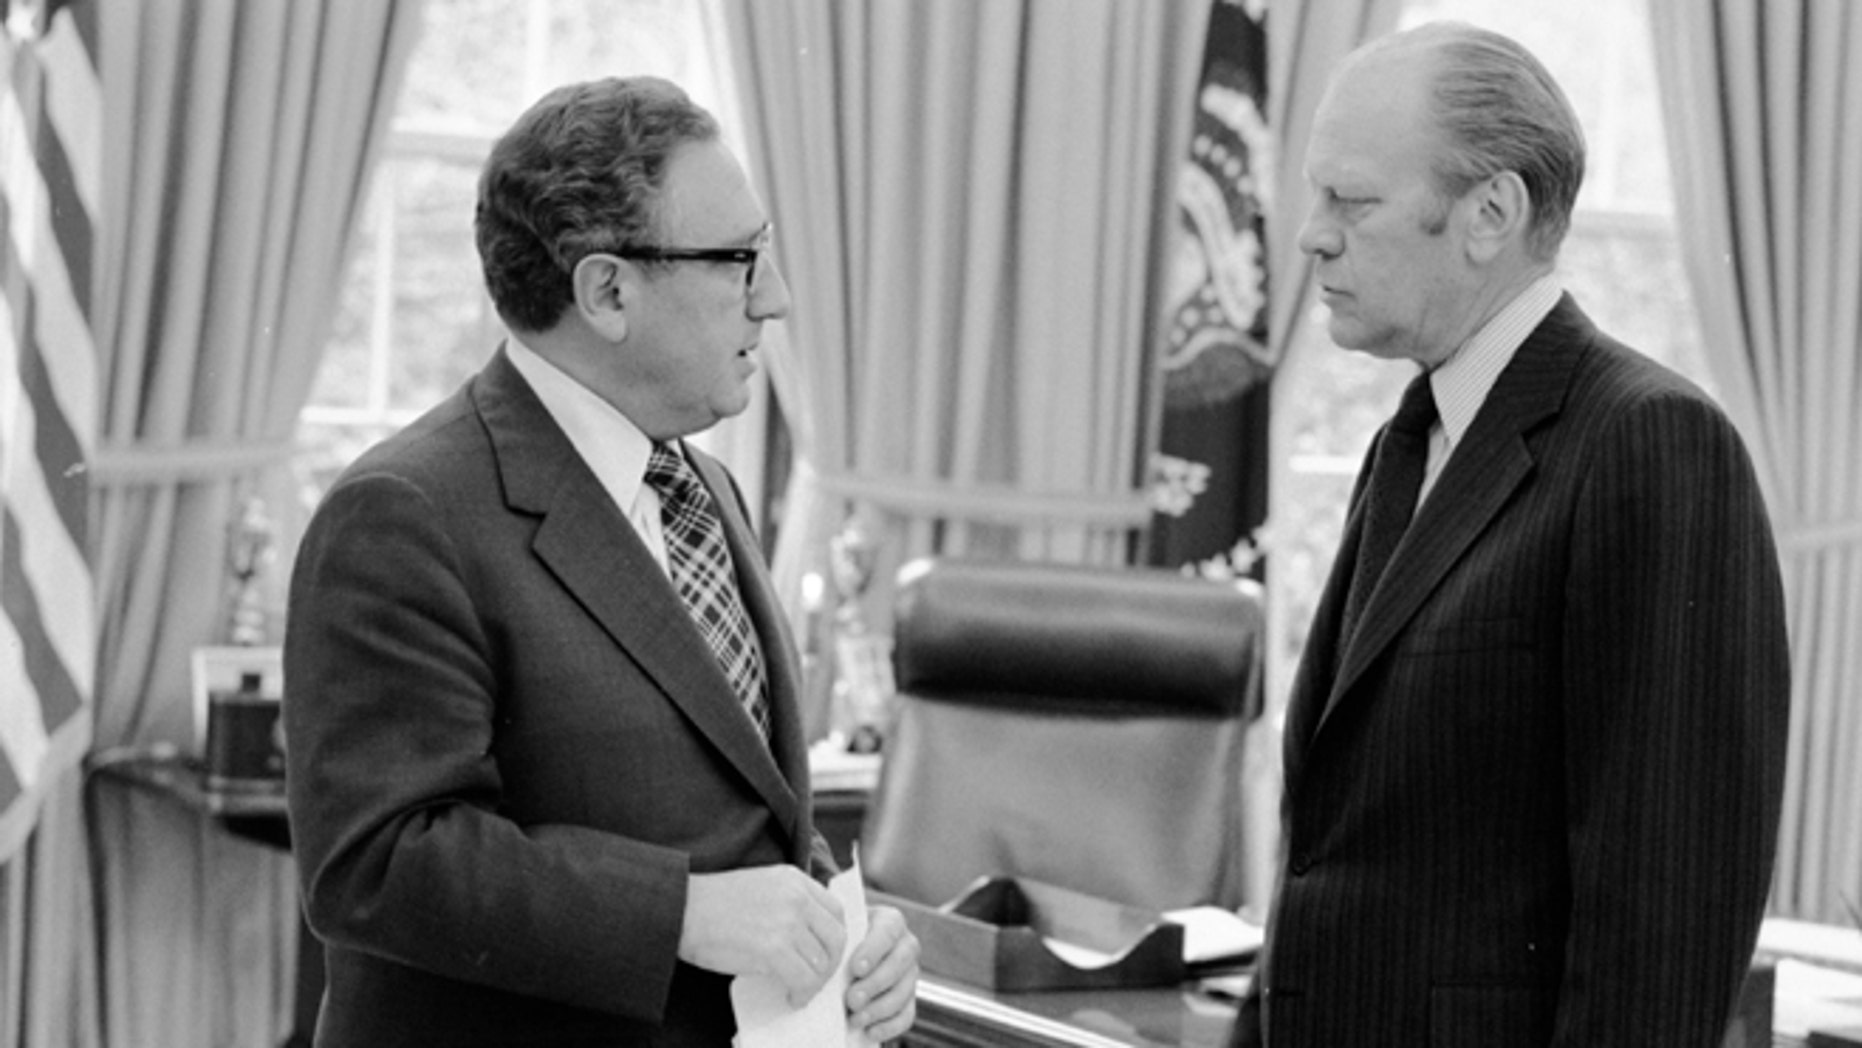 """This April 29, 1975 photo provided by courtesy of American Experience and the Gerald R. Ford Presidential Library shows, President Gerald R. Ford, right, and Secretary of  State Henry A. Kissinger during the evacuation of Saigon in South Vietnam. The new documentary film, """"Last  Days in Vietnam,"""" directed and produced by Rory Kennedy, recounts the dramatic events surrounding the 1975 military evacuation of Saigon during the Vietnam War. The film releases on Friday, Sept. 5, 2014. (AP Photo/Courtesy of American Experience, Gerald R. Ford Presidential Library)"""